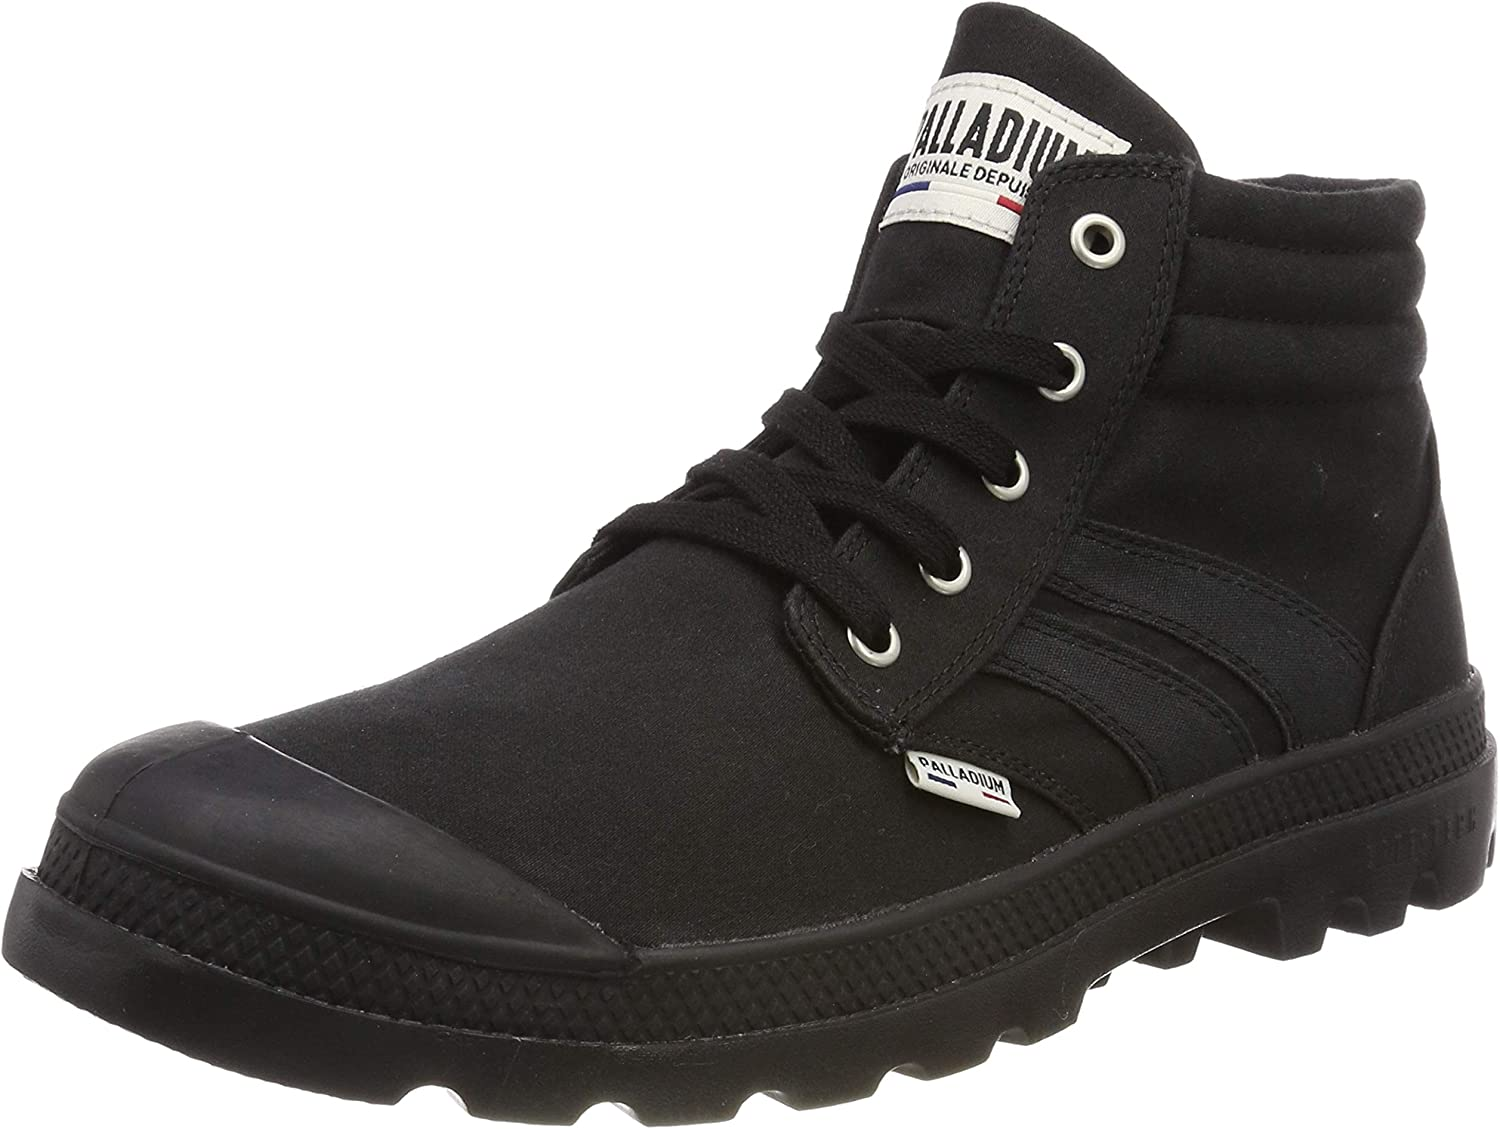 Palladium Unisex Adults' Retro Lt Sy U Hi-Top Trainers